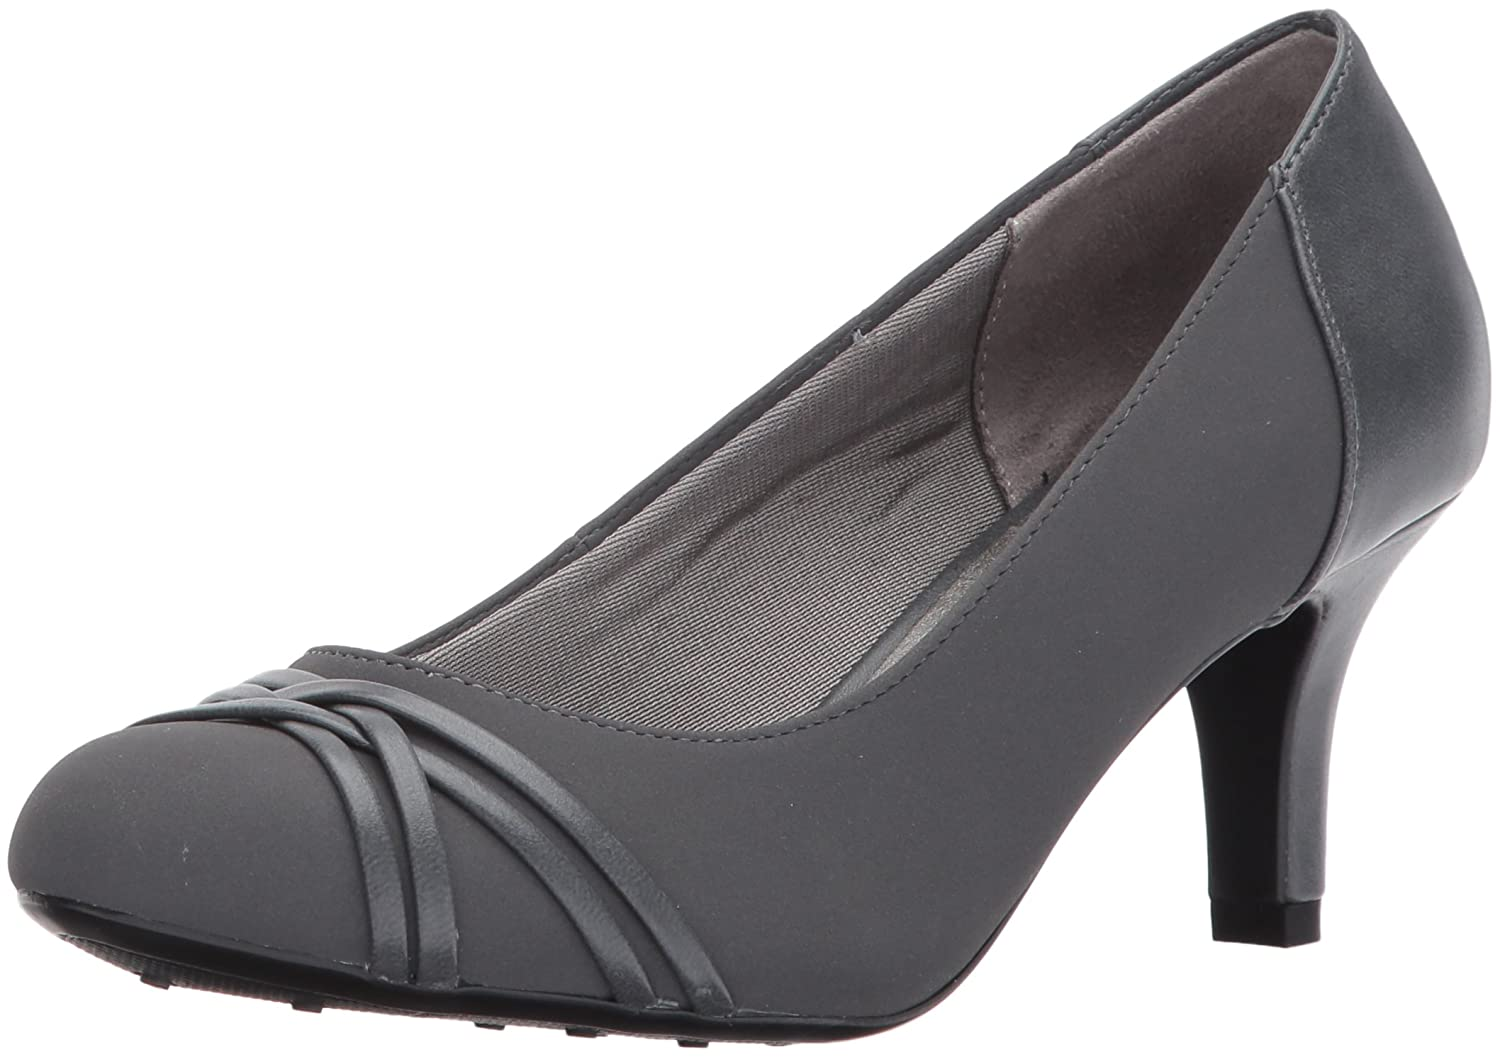 Tornado LifeStride Womens Pascal Dress Pump